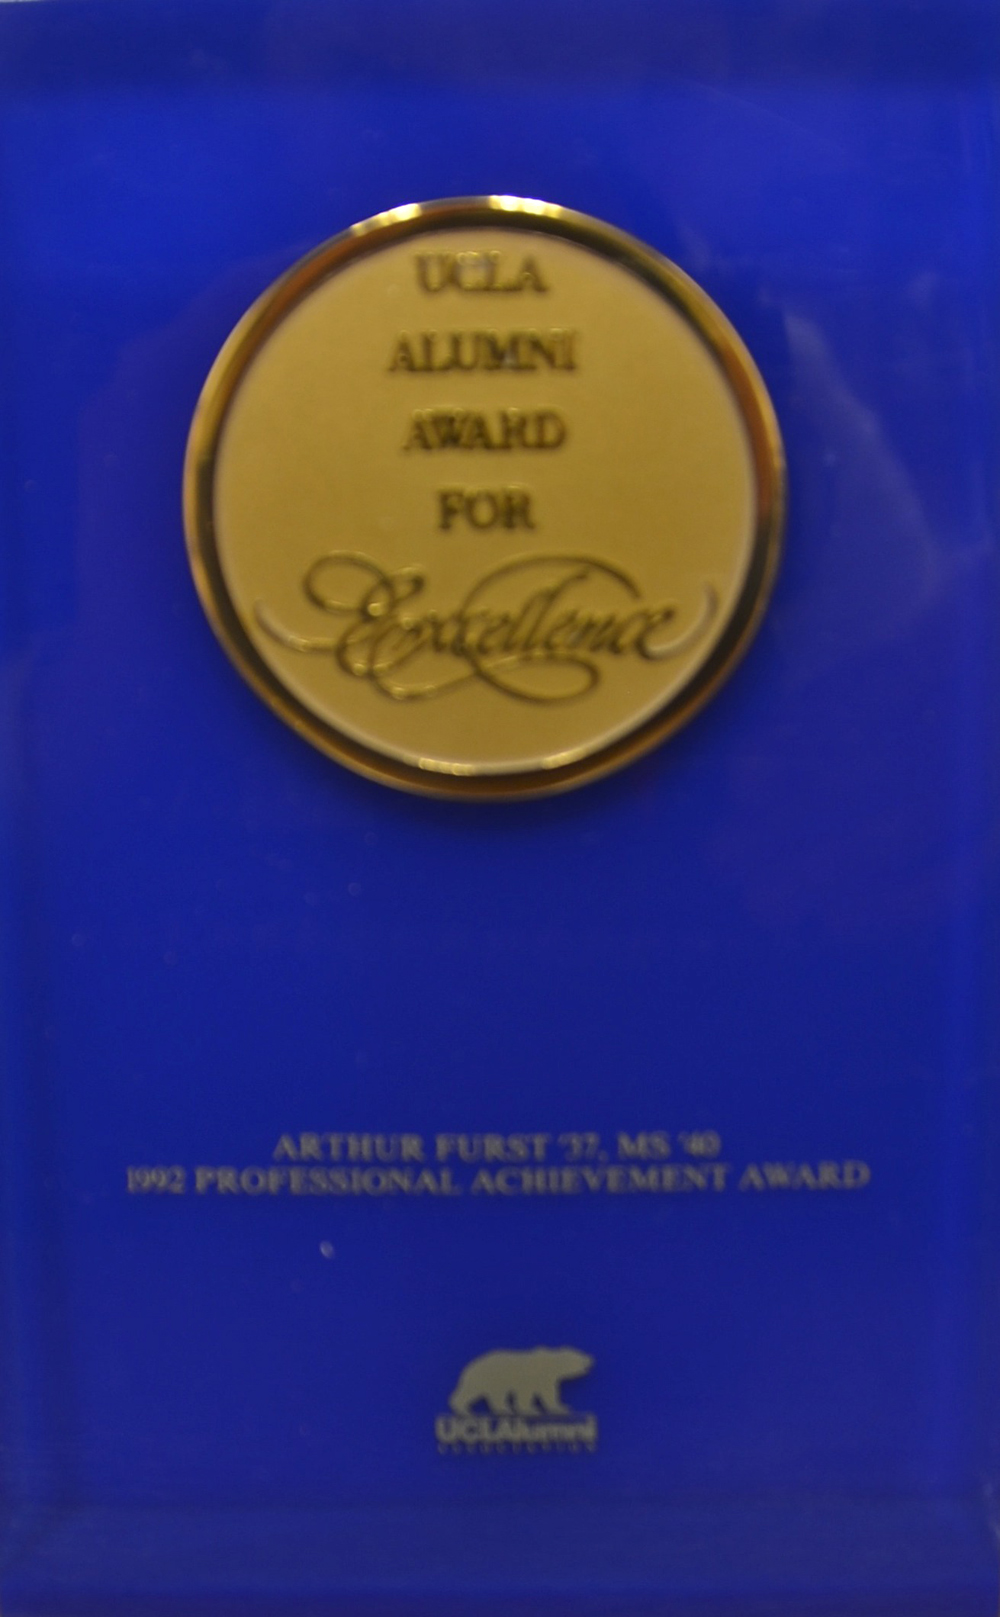 accomplishments achievements and awards 1992 ucla alumni award for excellence professional achievement award